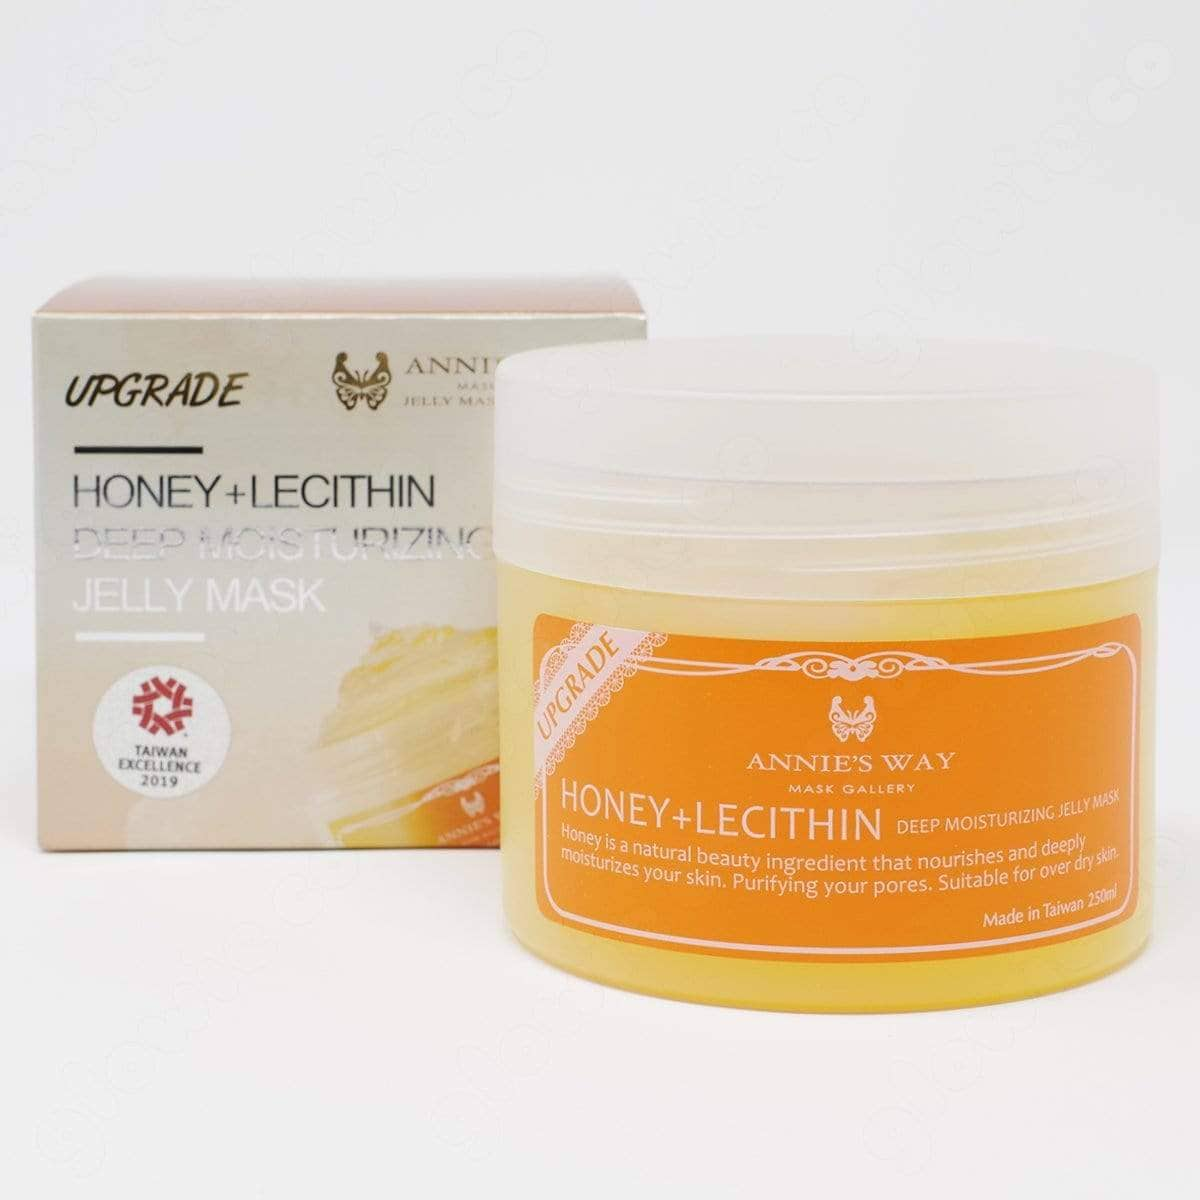 Annie's Way Honey Deep Moisturizing Jelly Mask